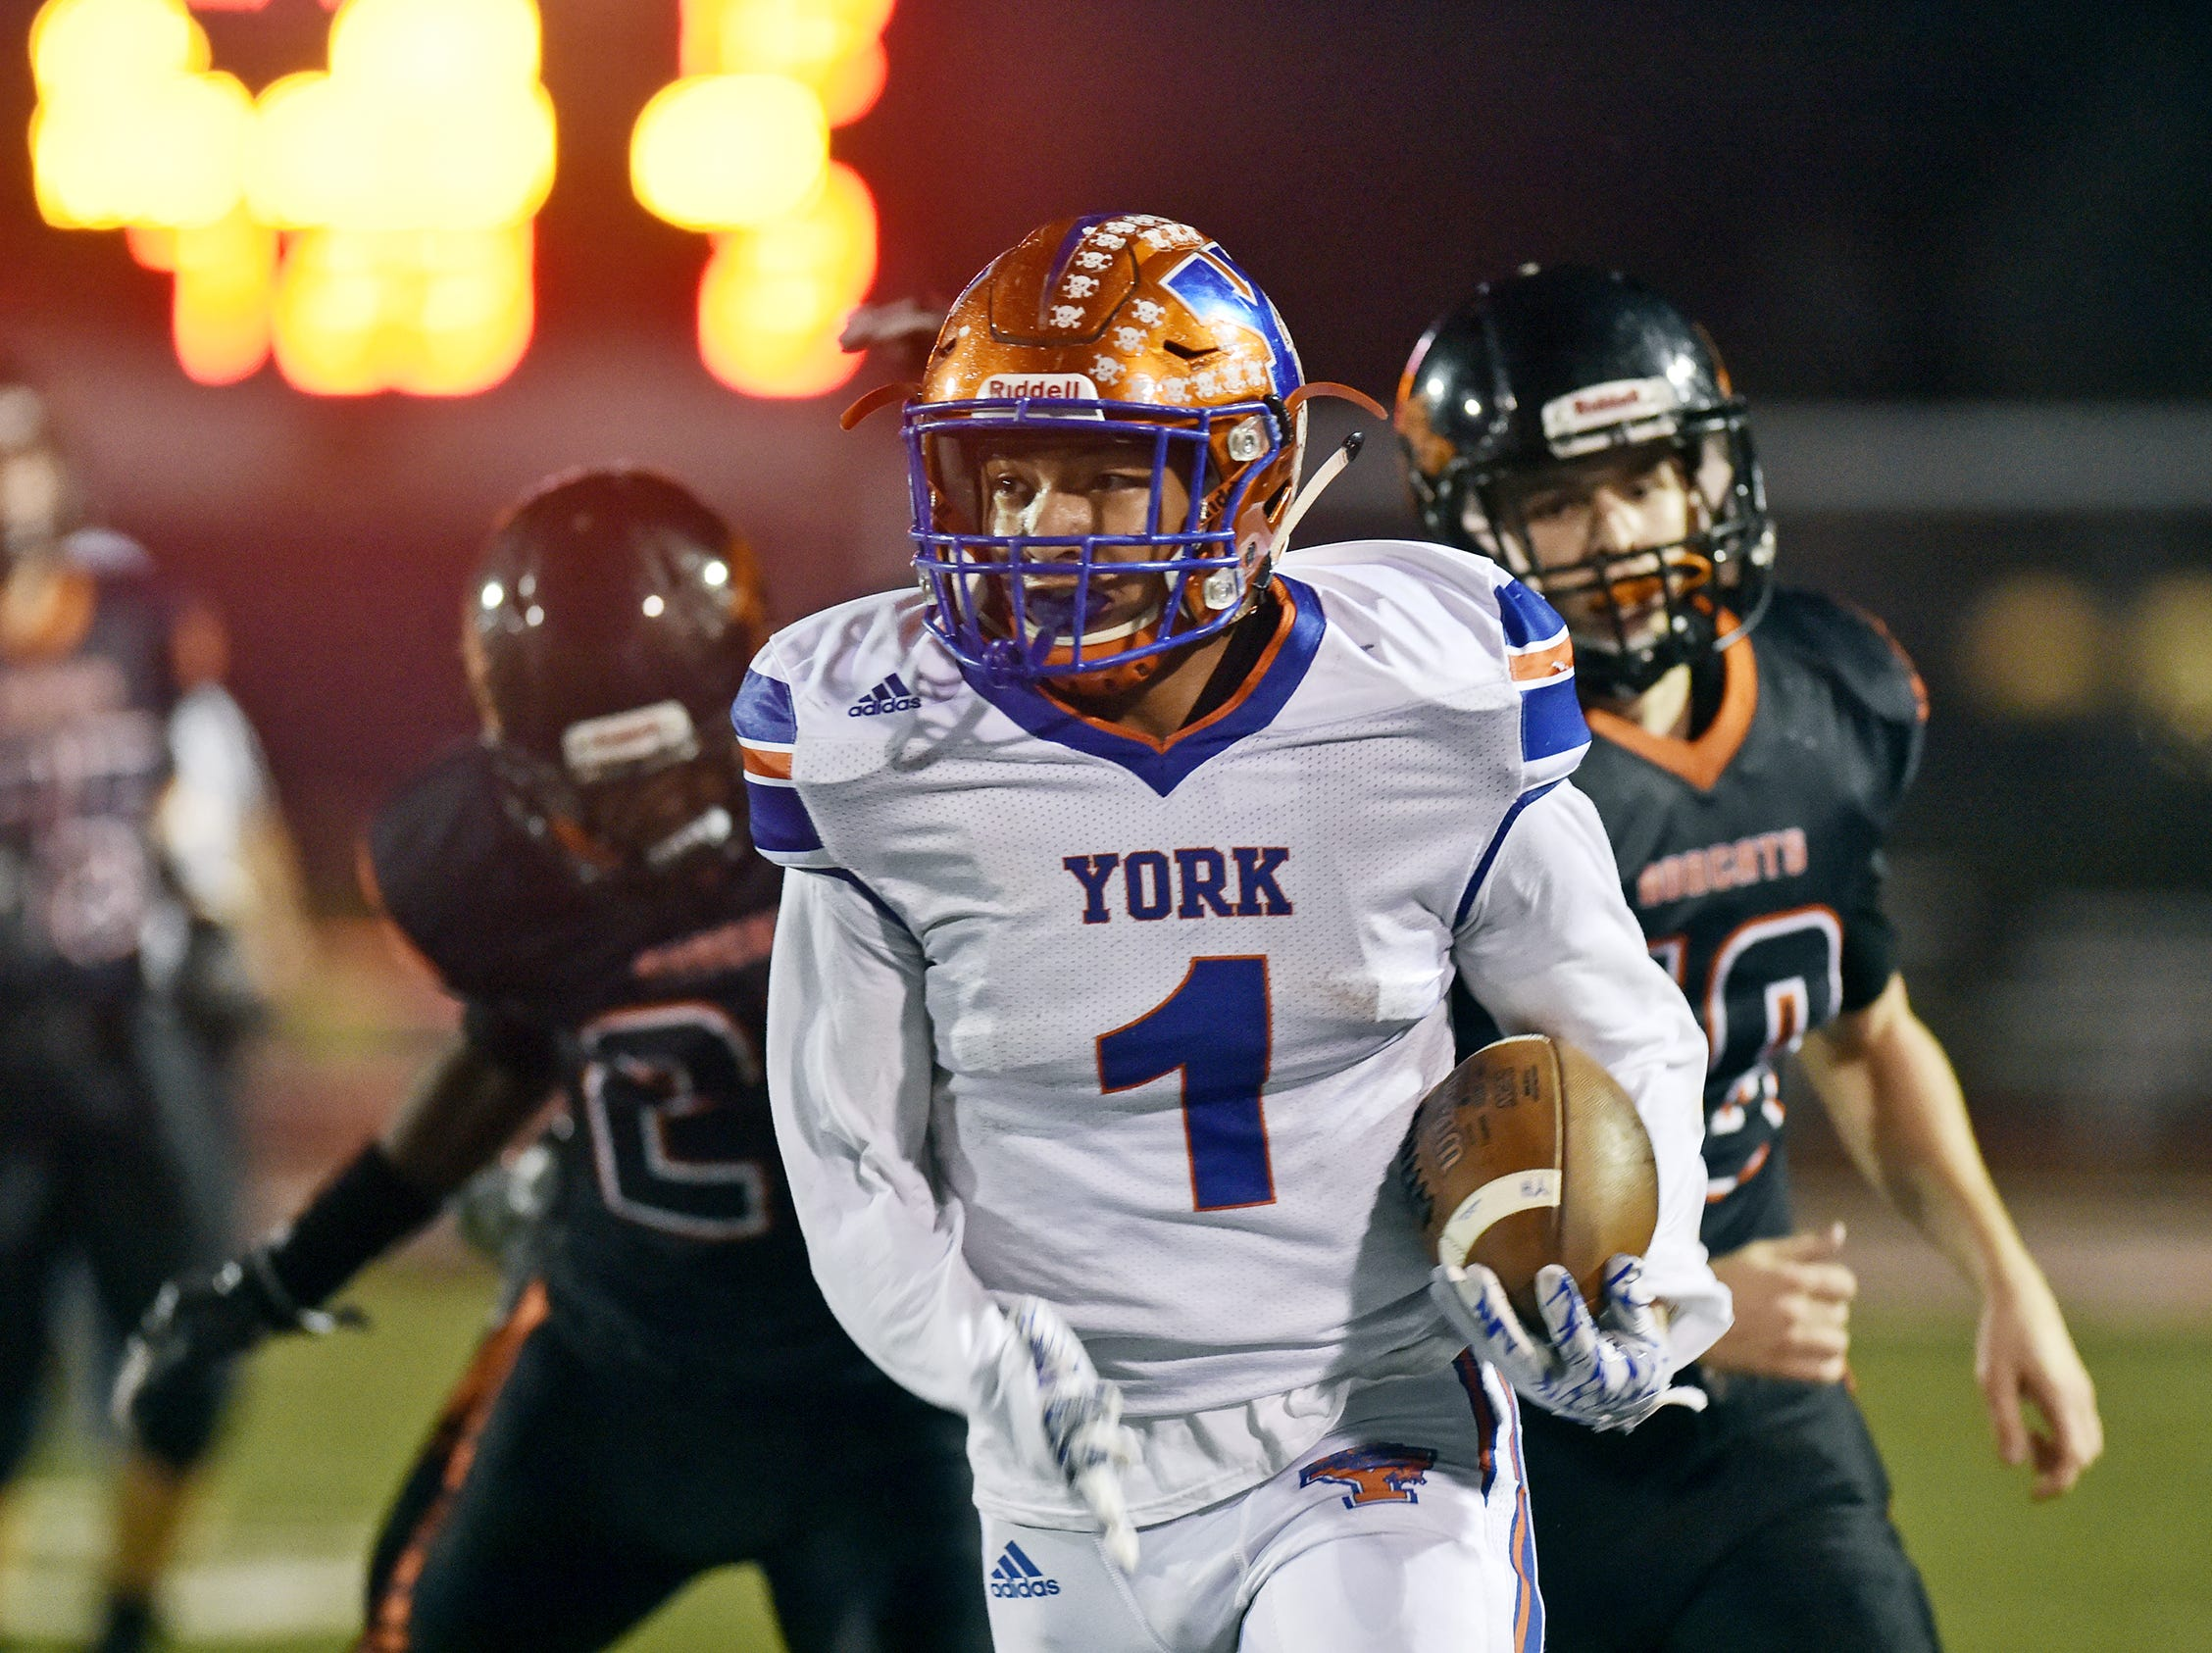 York High's Dayjure Stewart carries the ball against Northeastern in the first half of a YAIAA football game Friday, Oct. 13, 2017, at Northeastern. York High defeated Northeastern 55-6.